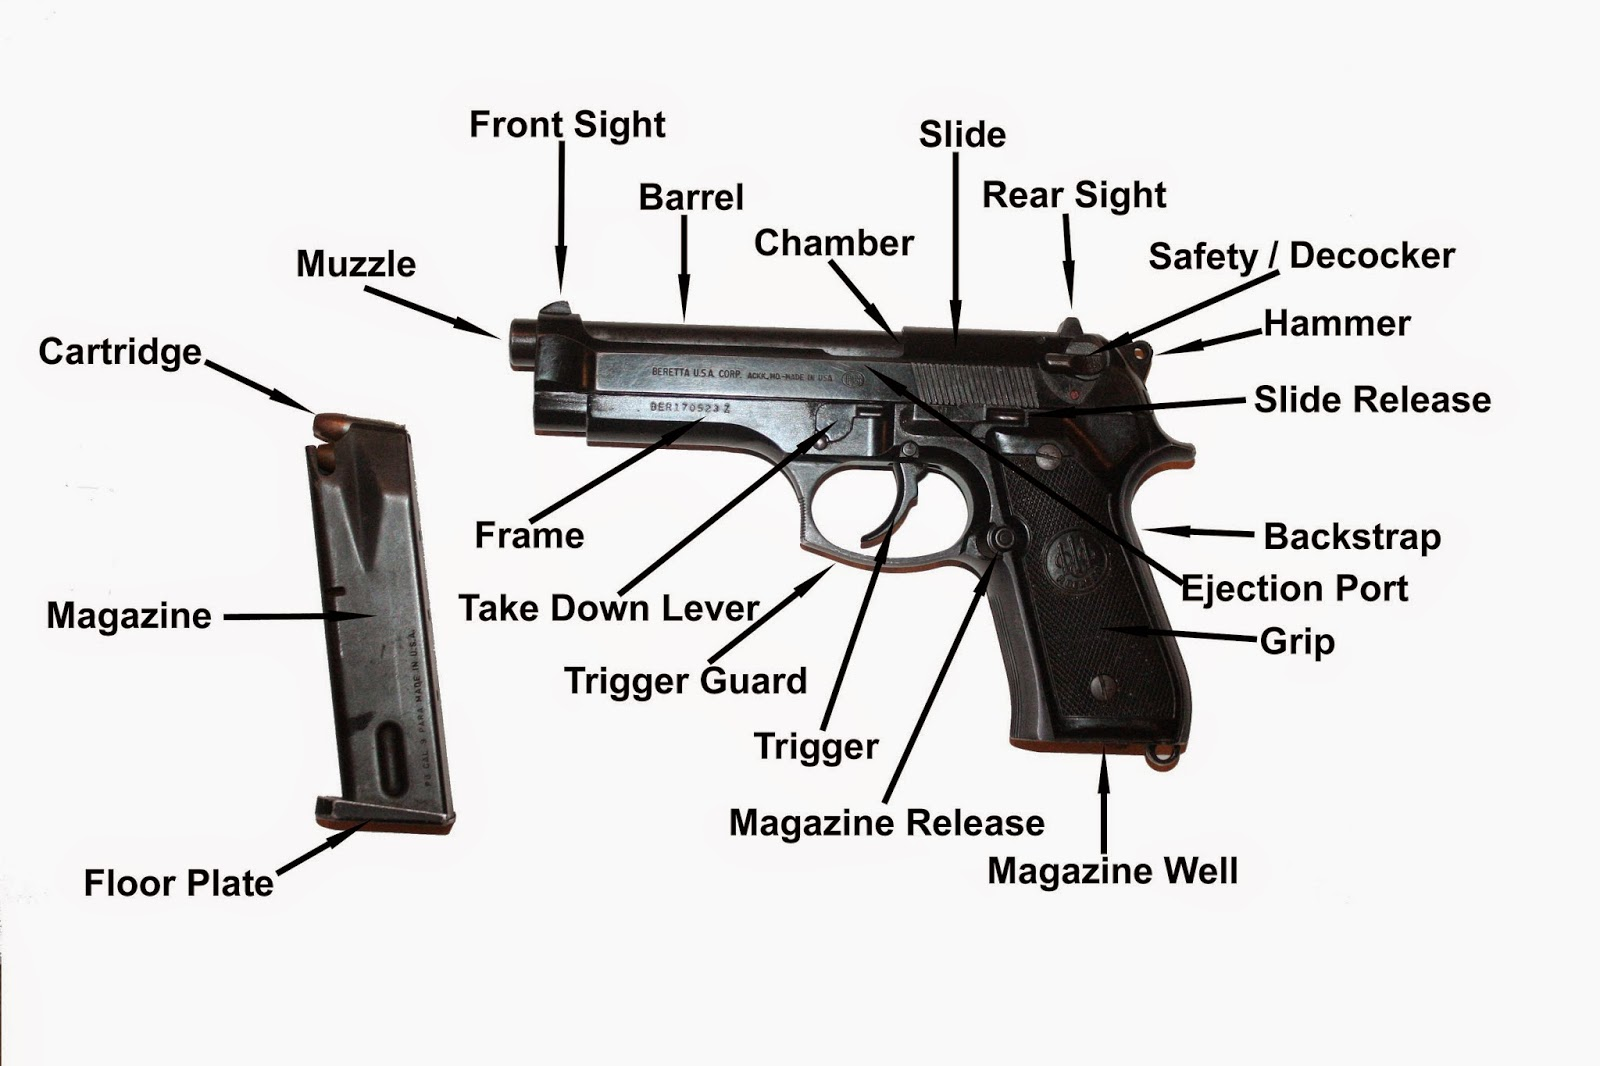 Righting Crime Fiction: Semi-Automatic Pistol Basics on revolver diagram, bosch 1942 heat gun diagram, handgun components, handgun barrel, fishing diagram, scope diagram, handgun safety diagram, 1911 gun diagram, handgun illustrations, firearms diagram, bb gun diagram, handgun light, rimfire diagram, handgun terminology, handgun anatomy, colt 1911 assembly diagram, handgun brand names, rifle diagram, shotgun diagram, handgun ammunition diagram,